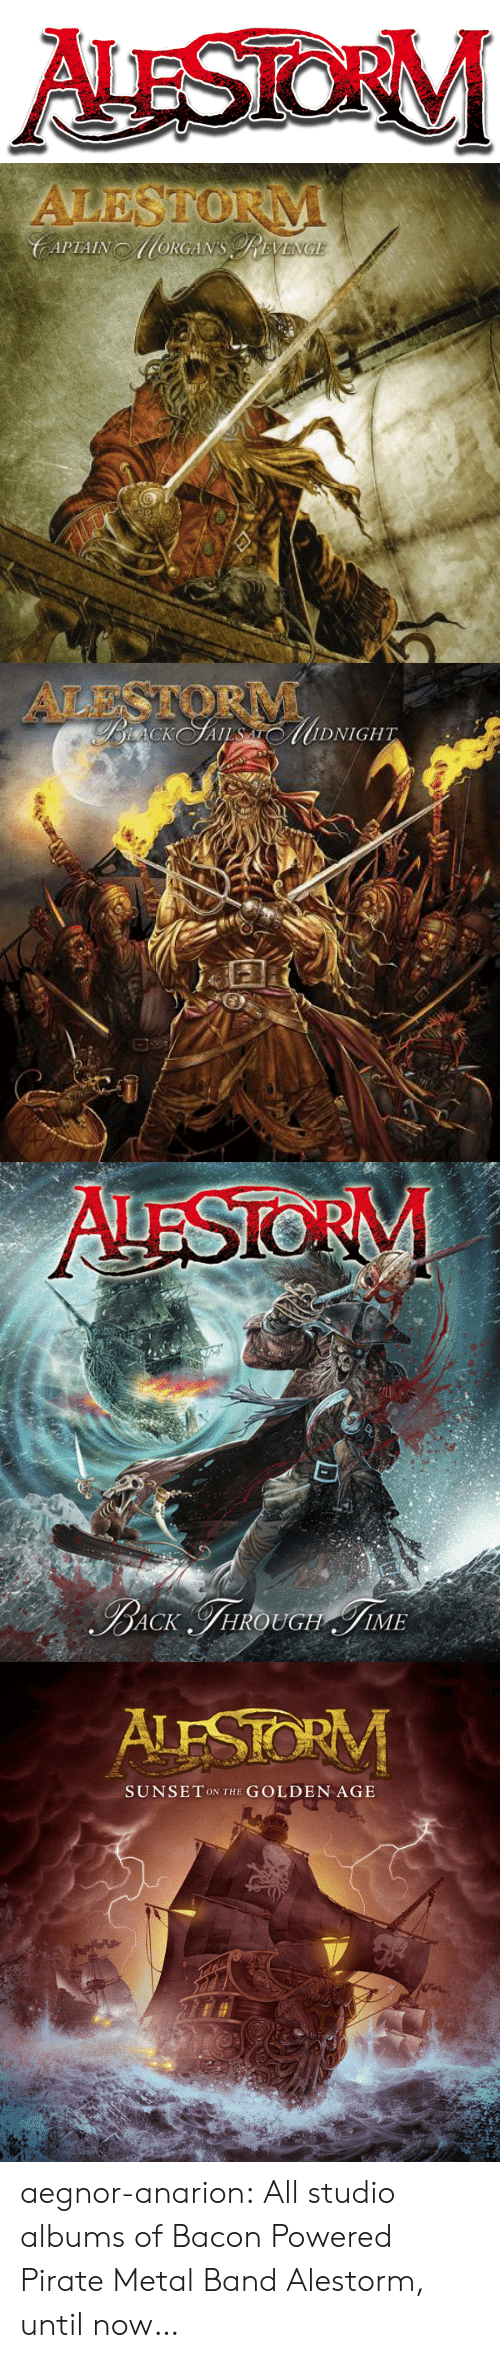 Albums: ALESTORM   ALESTORM  CAPTAINORGANs RVENCE   ALESTORM  BiaCK SAL DNIGHT   AUESTORM  BACK FHROUGH IME   ALESTORM  SUNSET ON THE GOLDEN AGE aegnor-anarion:  All studio albums of Bacon Powered Pirate Metal Band Alestorm, until now…